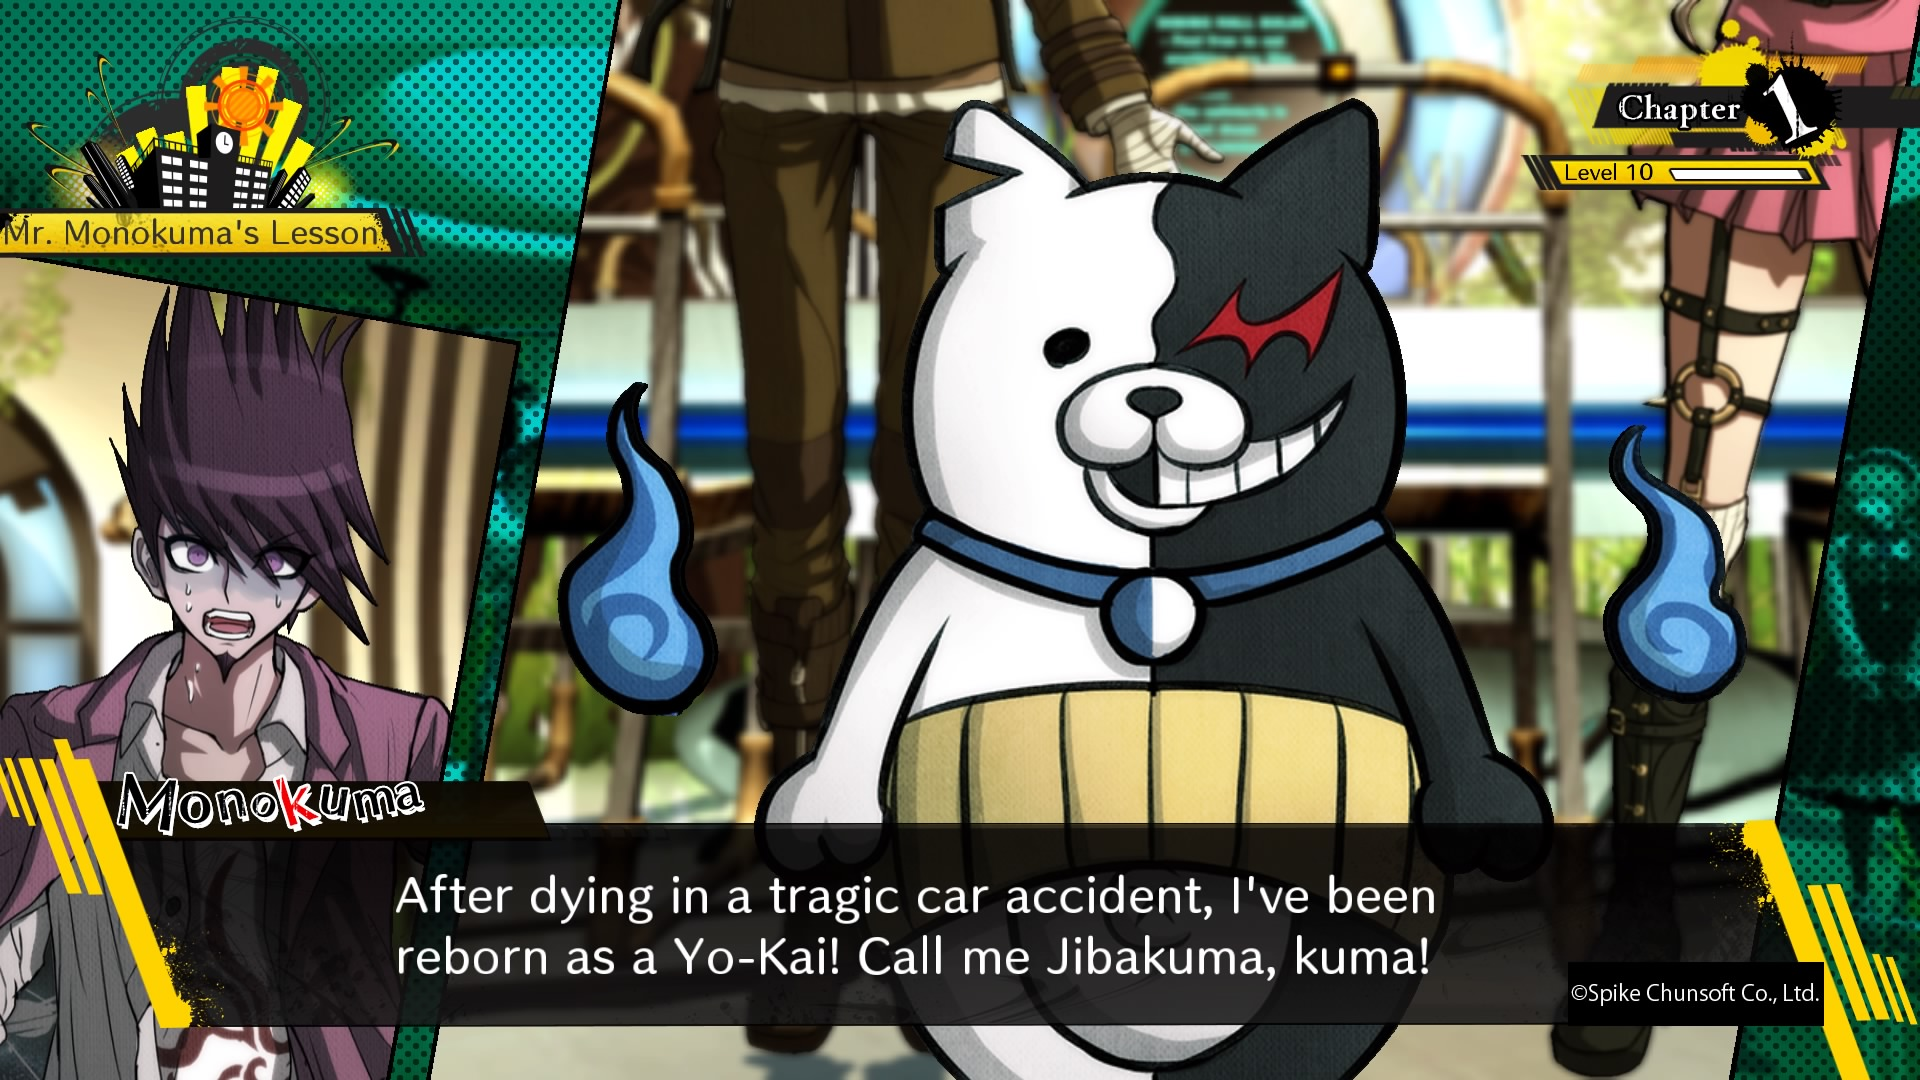 Danganronpa V3 Killing Harmony Review The Good Times Are Killing Me Usgamer Hoy es el cumple del best husbando having some fun on paper…i love hoshi's cat face buttons from his jacket so much, it's an adorable detail, related. danganronpa v3 killing harmony review